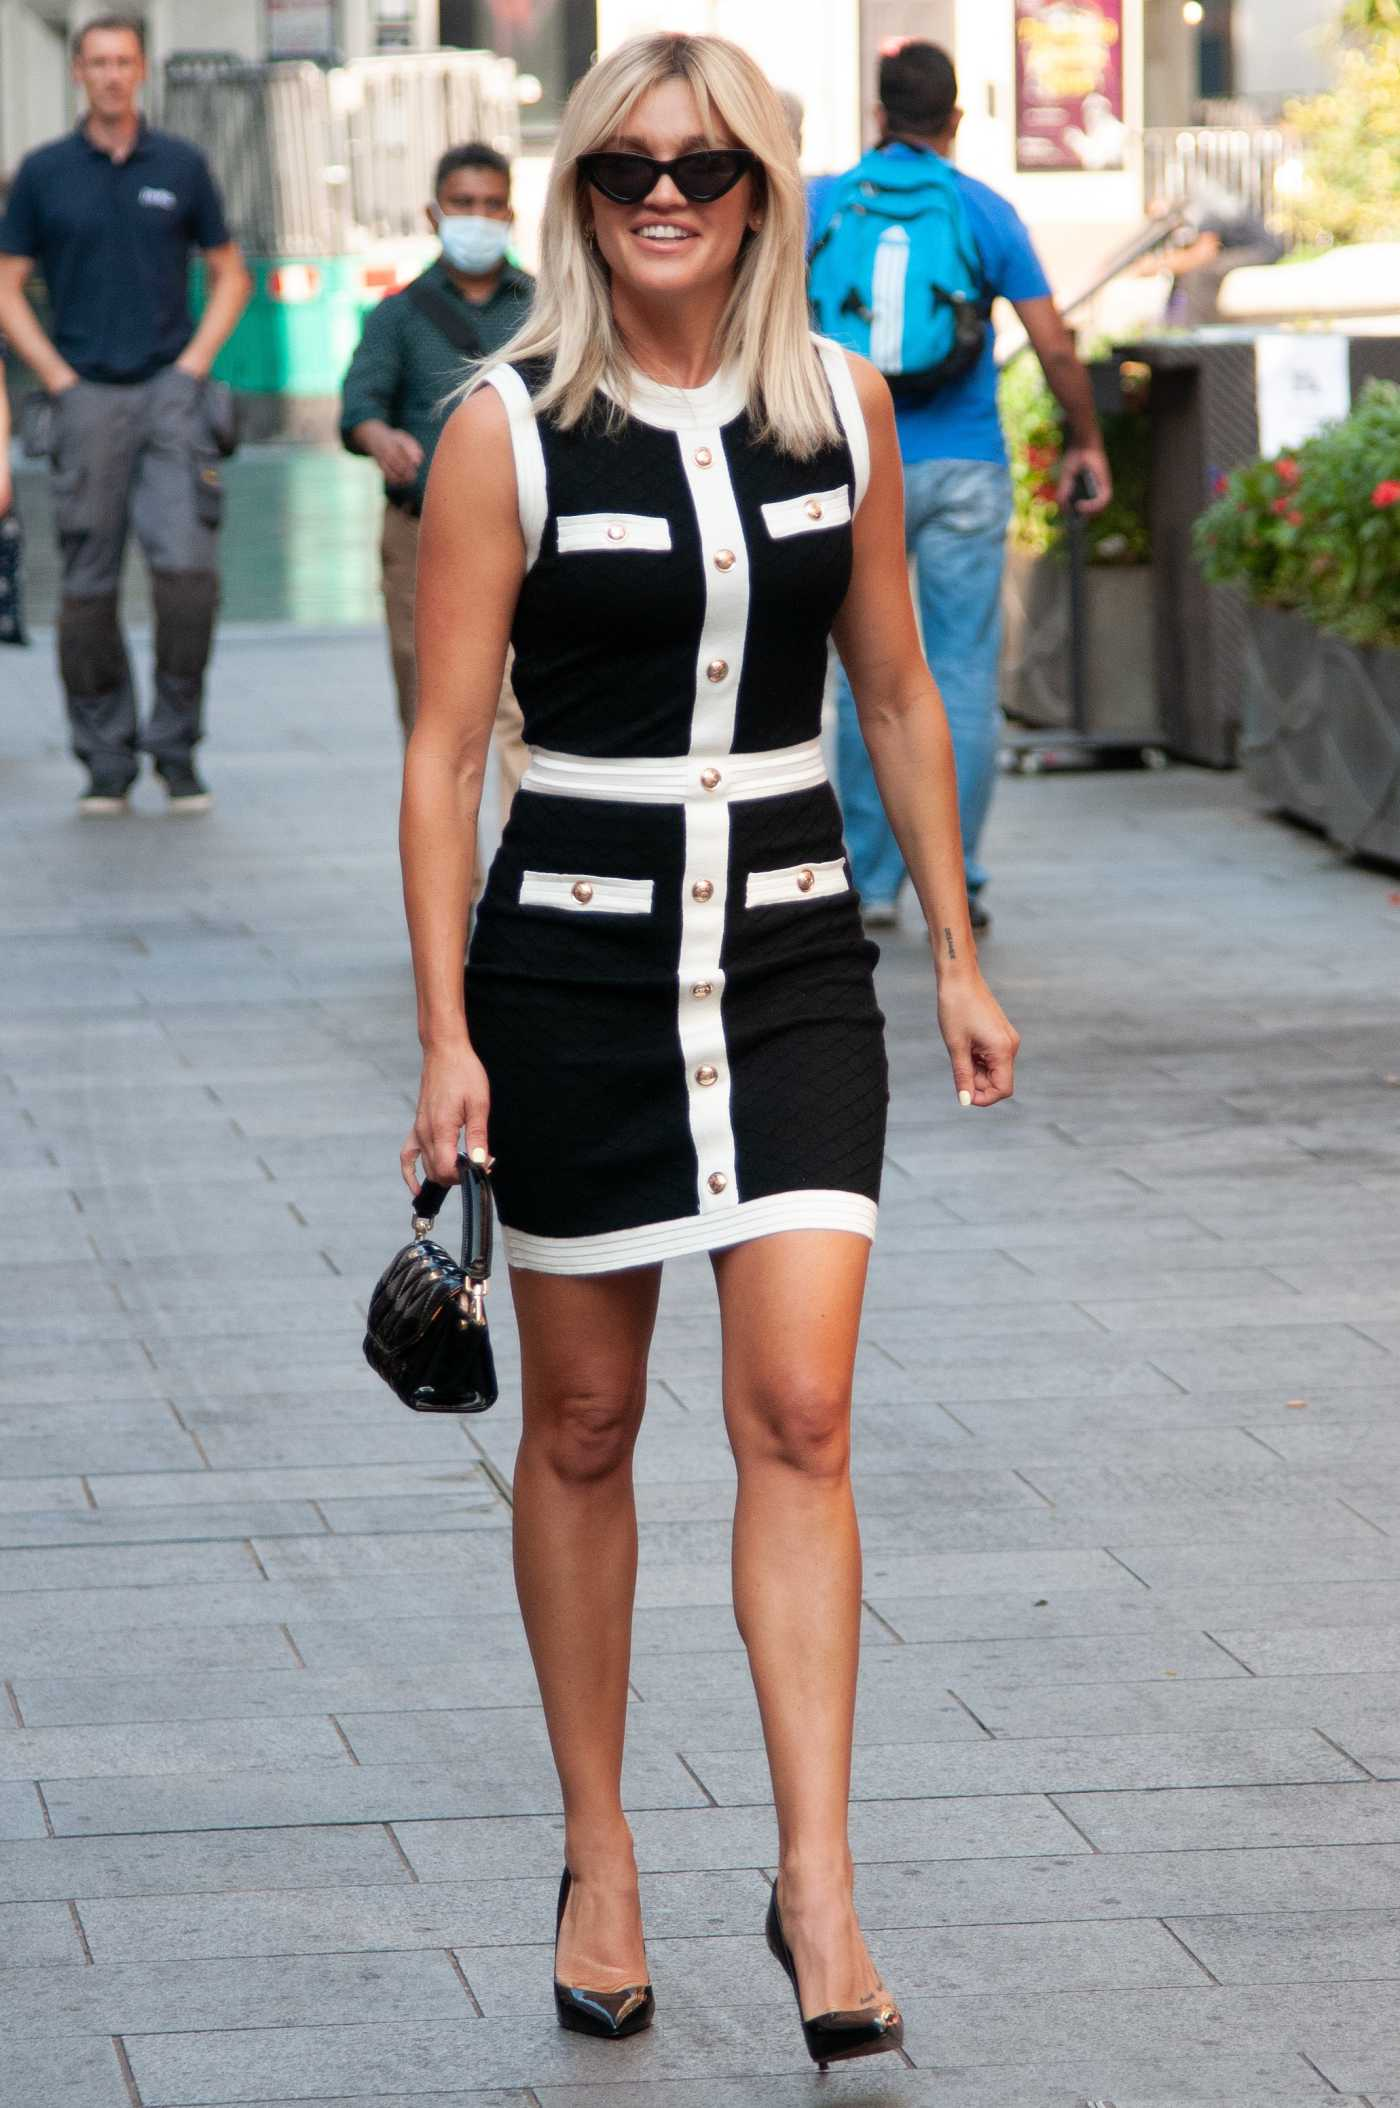 Ashley Roberts in a Black and White Dress Leaves the Global Studios in London 09/15/2020